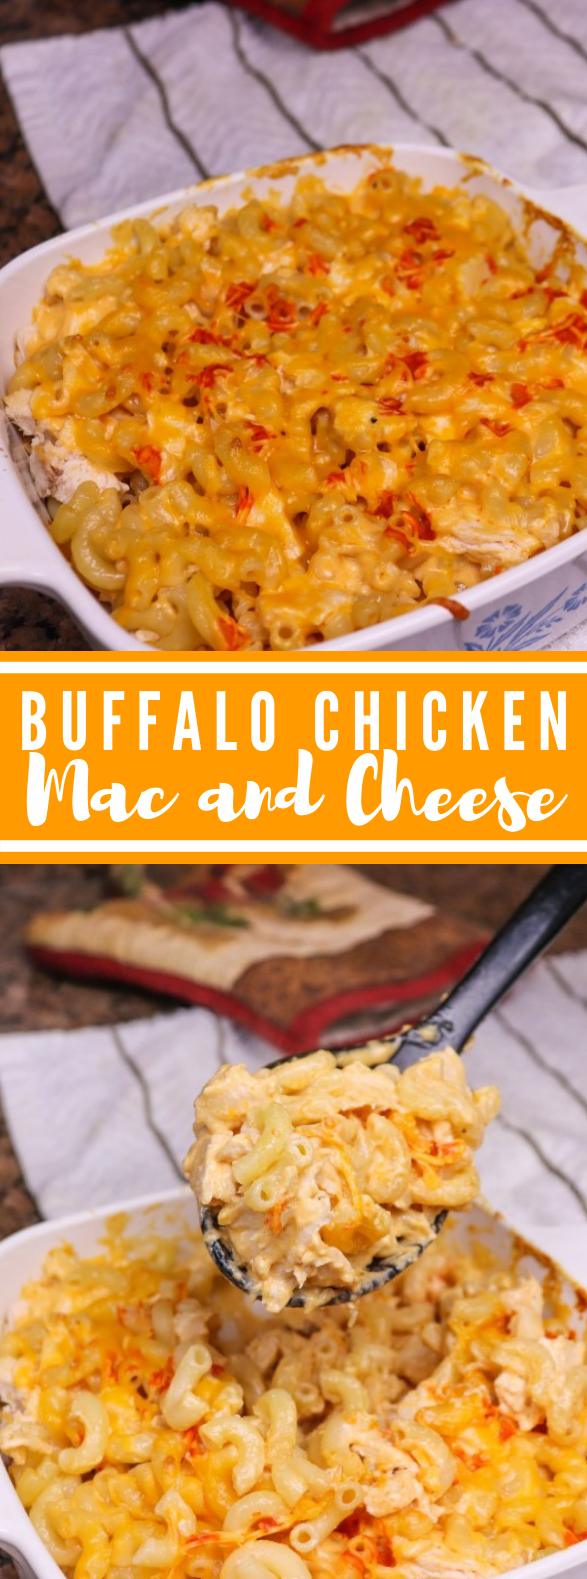 Buffalo Chicken Mac And Cheese #dinner #lunch